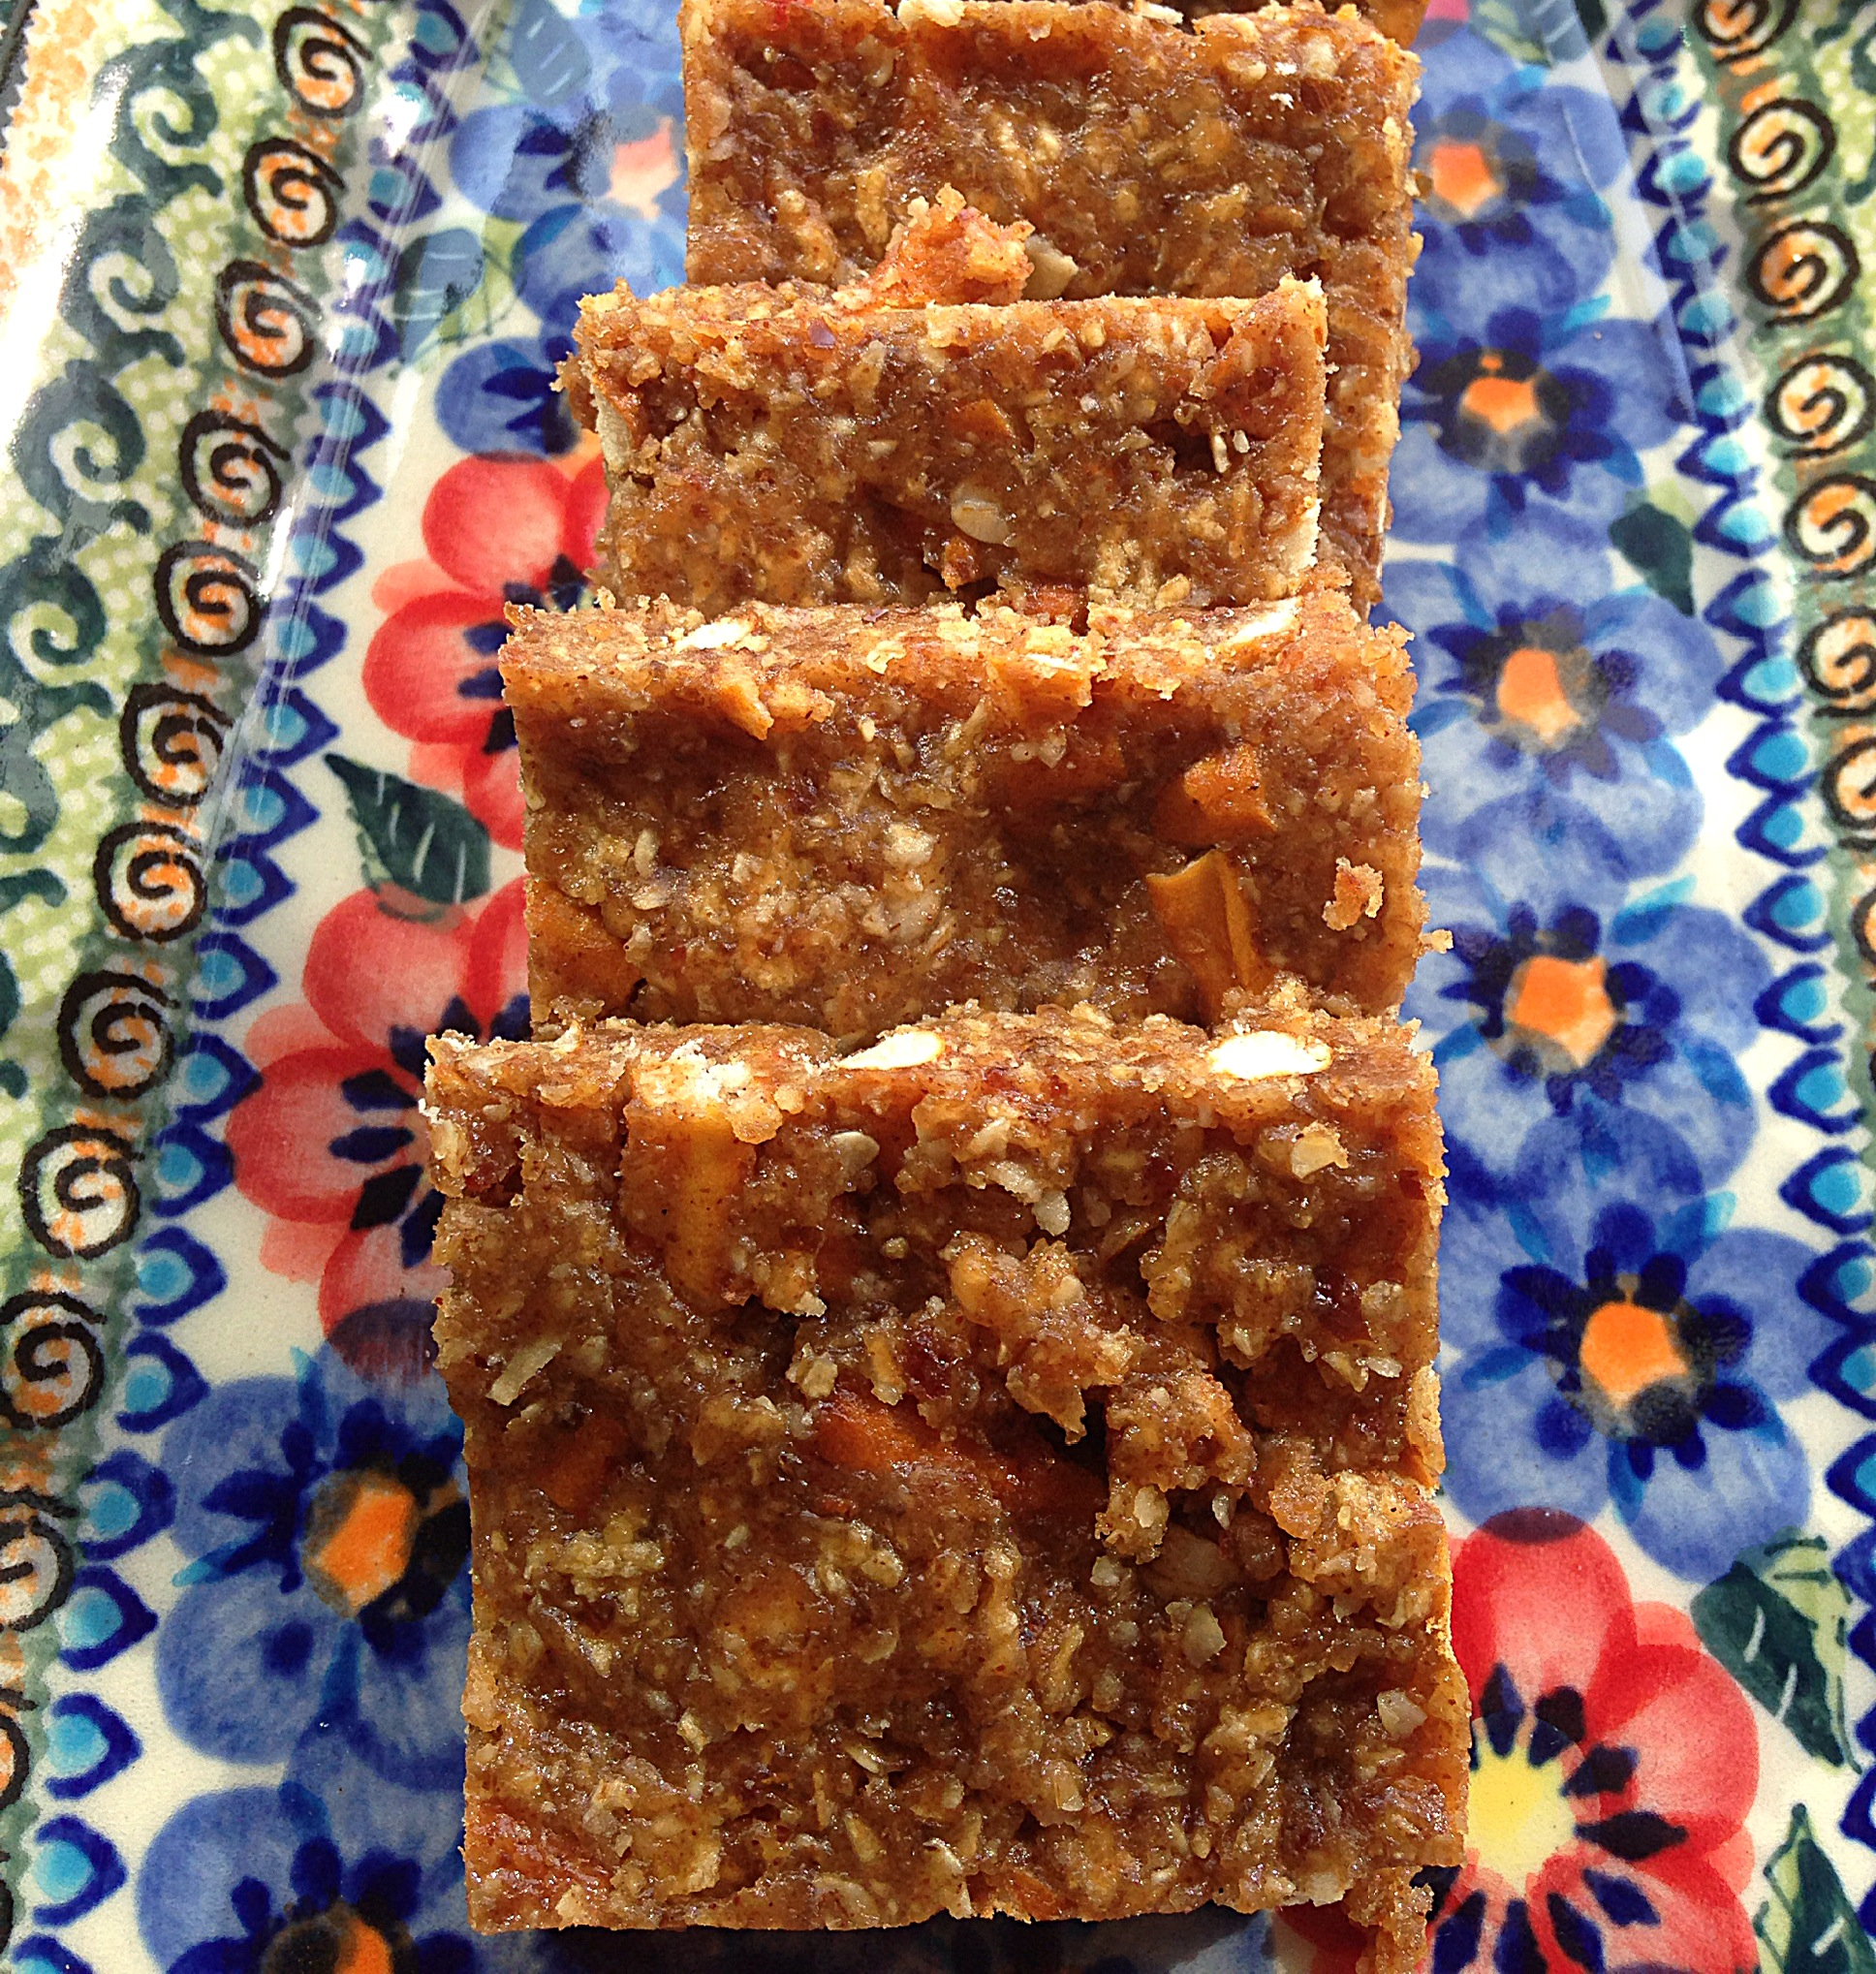 Sweet & Salty Squares, made with almond butter and gluten free pretzels